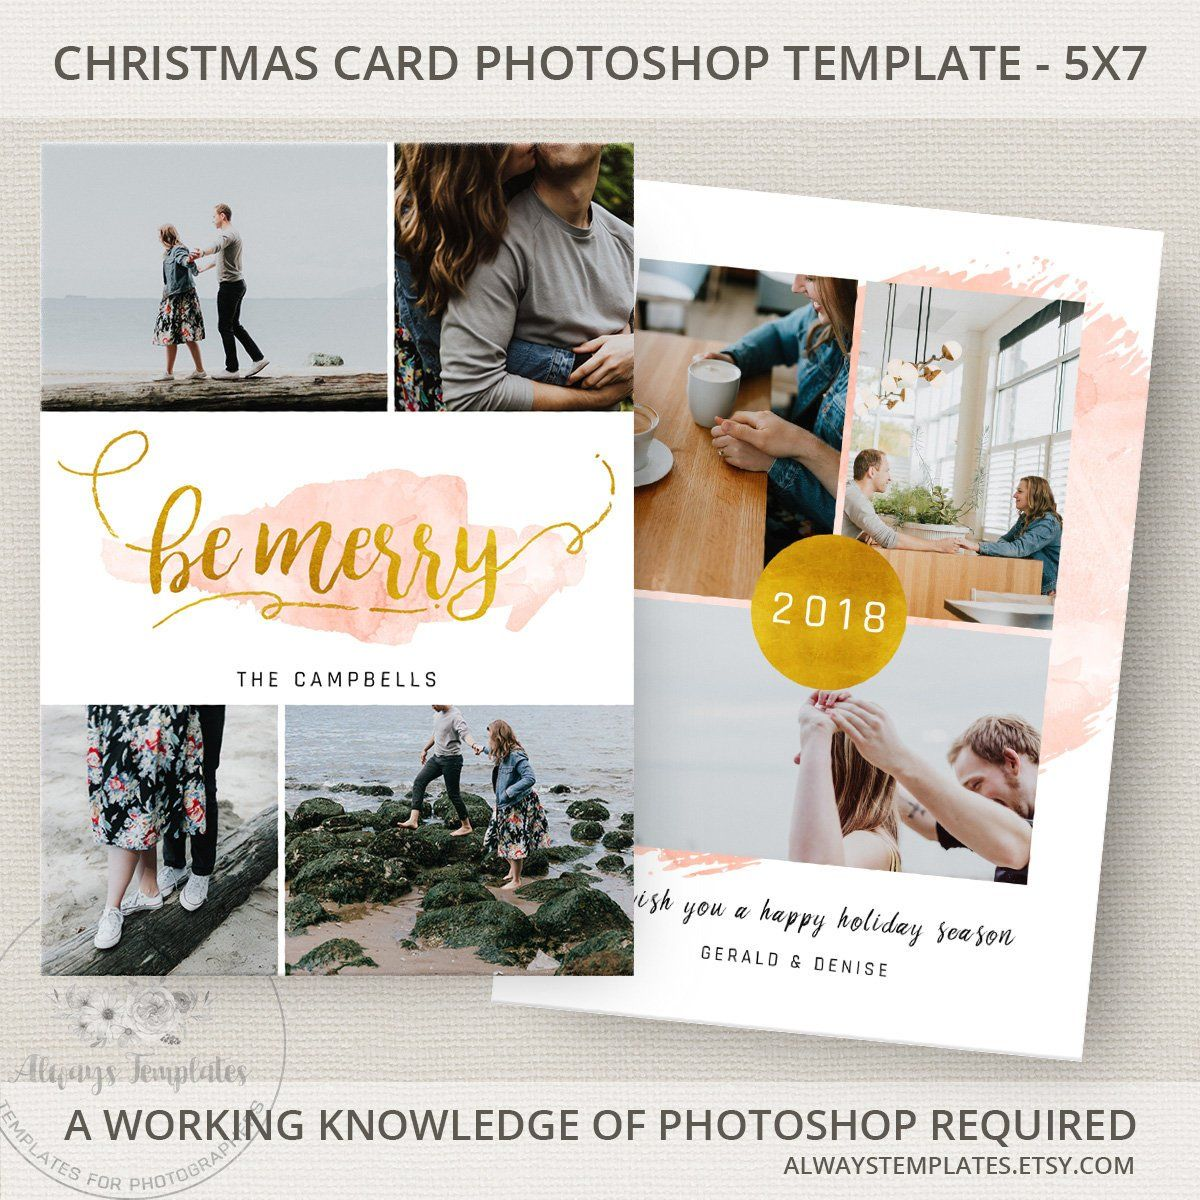 Christmas Card Template Photo Holiday Photoshop PSD 5x7 By AlwaysTemplates